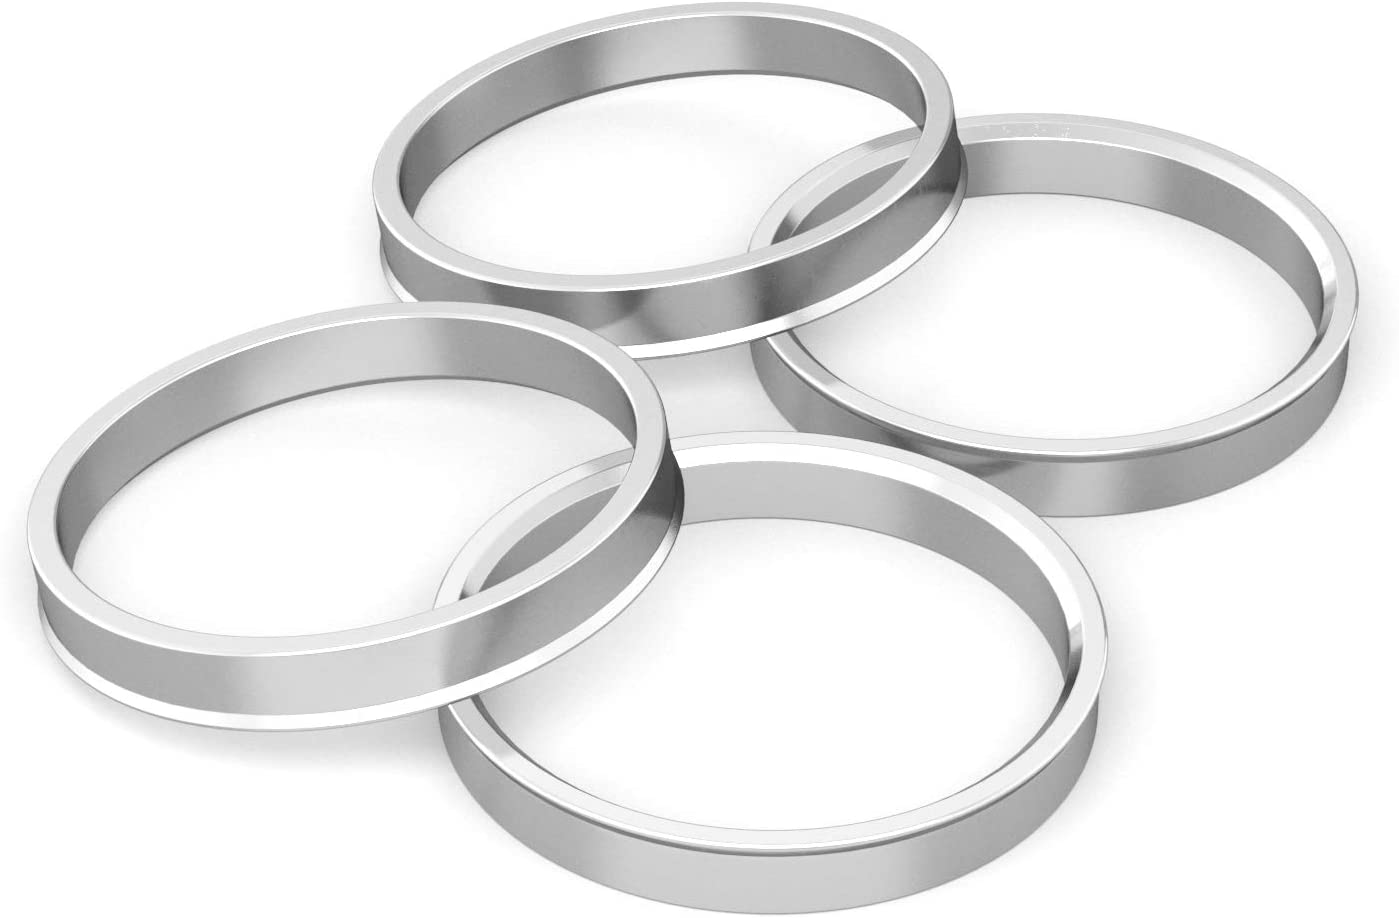 Hubcentric Rings (Pack of 4) - 54.1mm ID to 72.6mm OD - Silver Aluminum Hubrings - Only Fits 54.1mm Vehicle Hubs and 72.6mm Wheel Centerbore - Compatible with various Scion Mazda Toyota